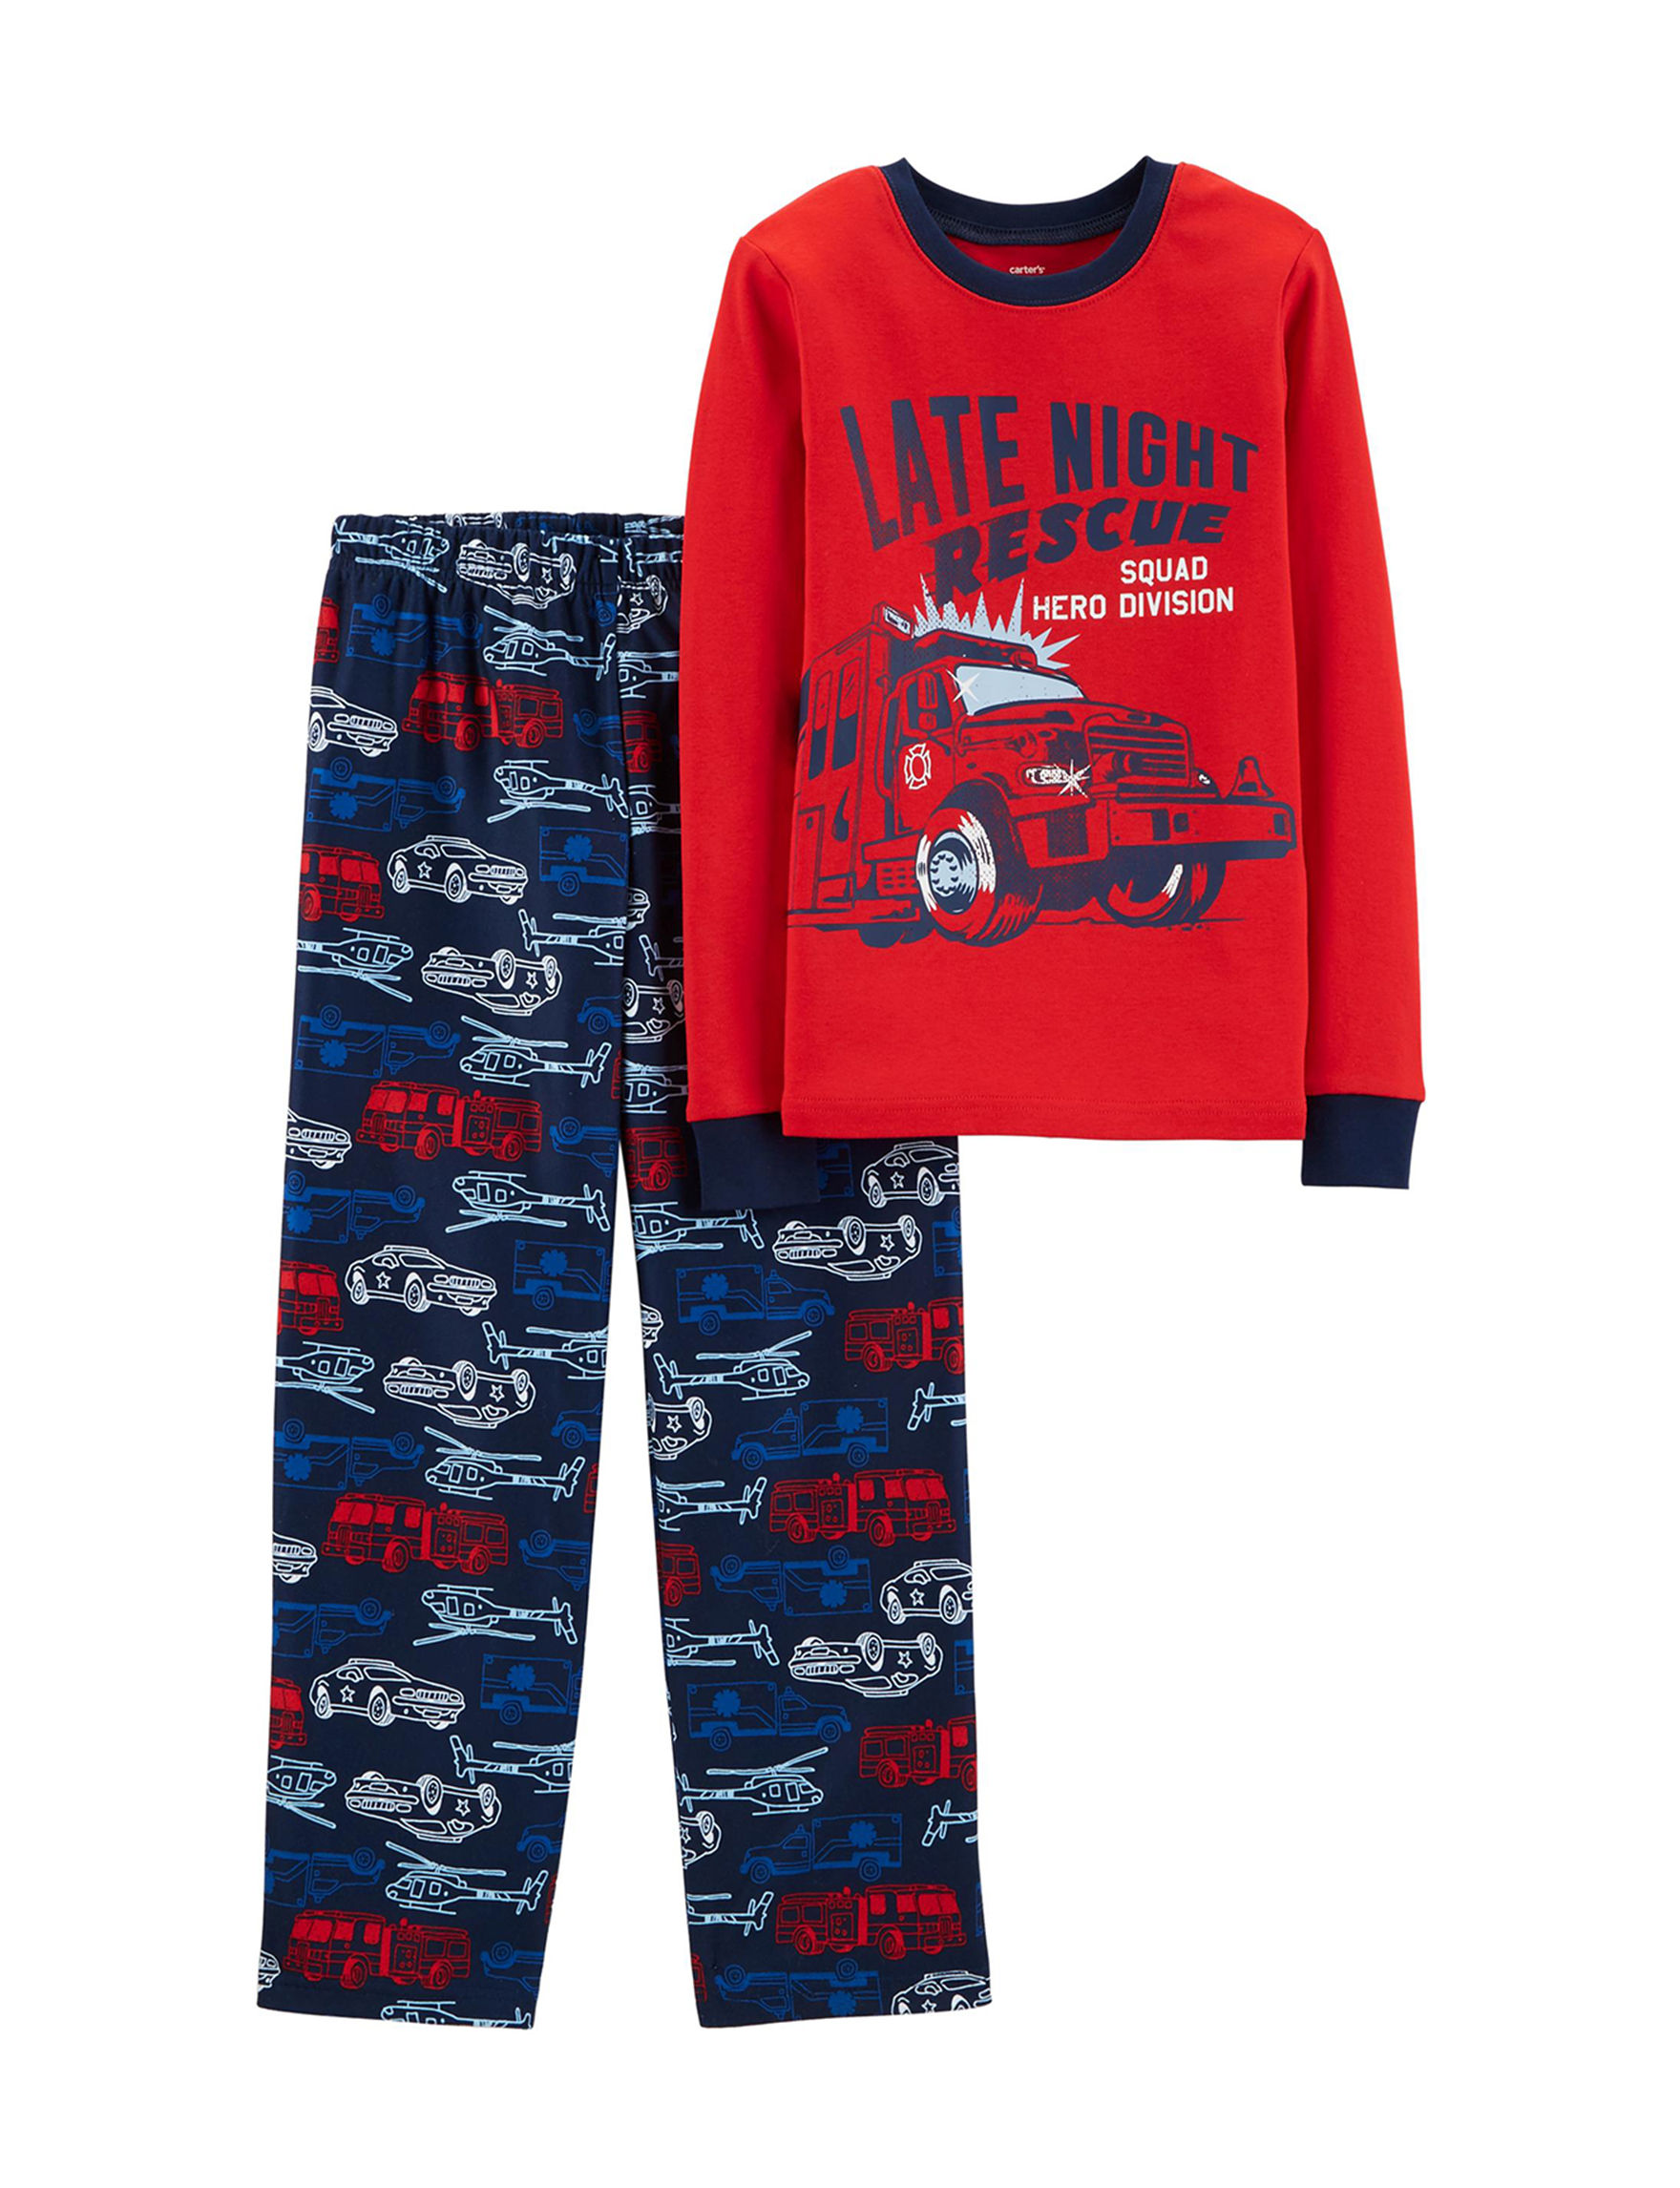 Carter's Red / Navy Pajama Sets